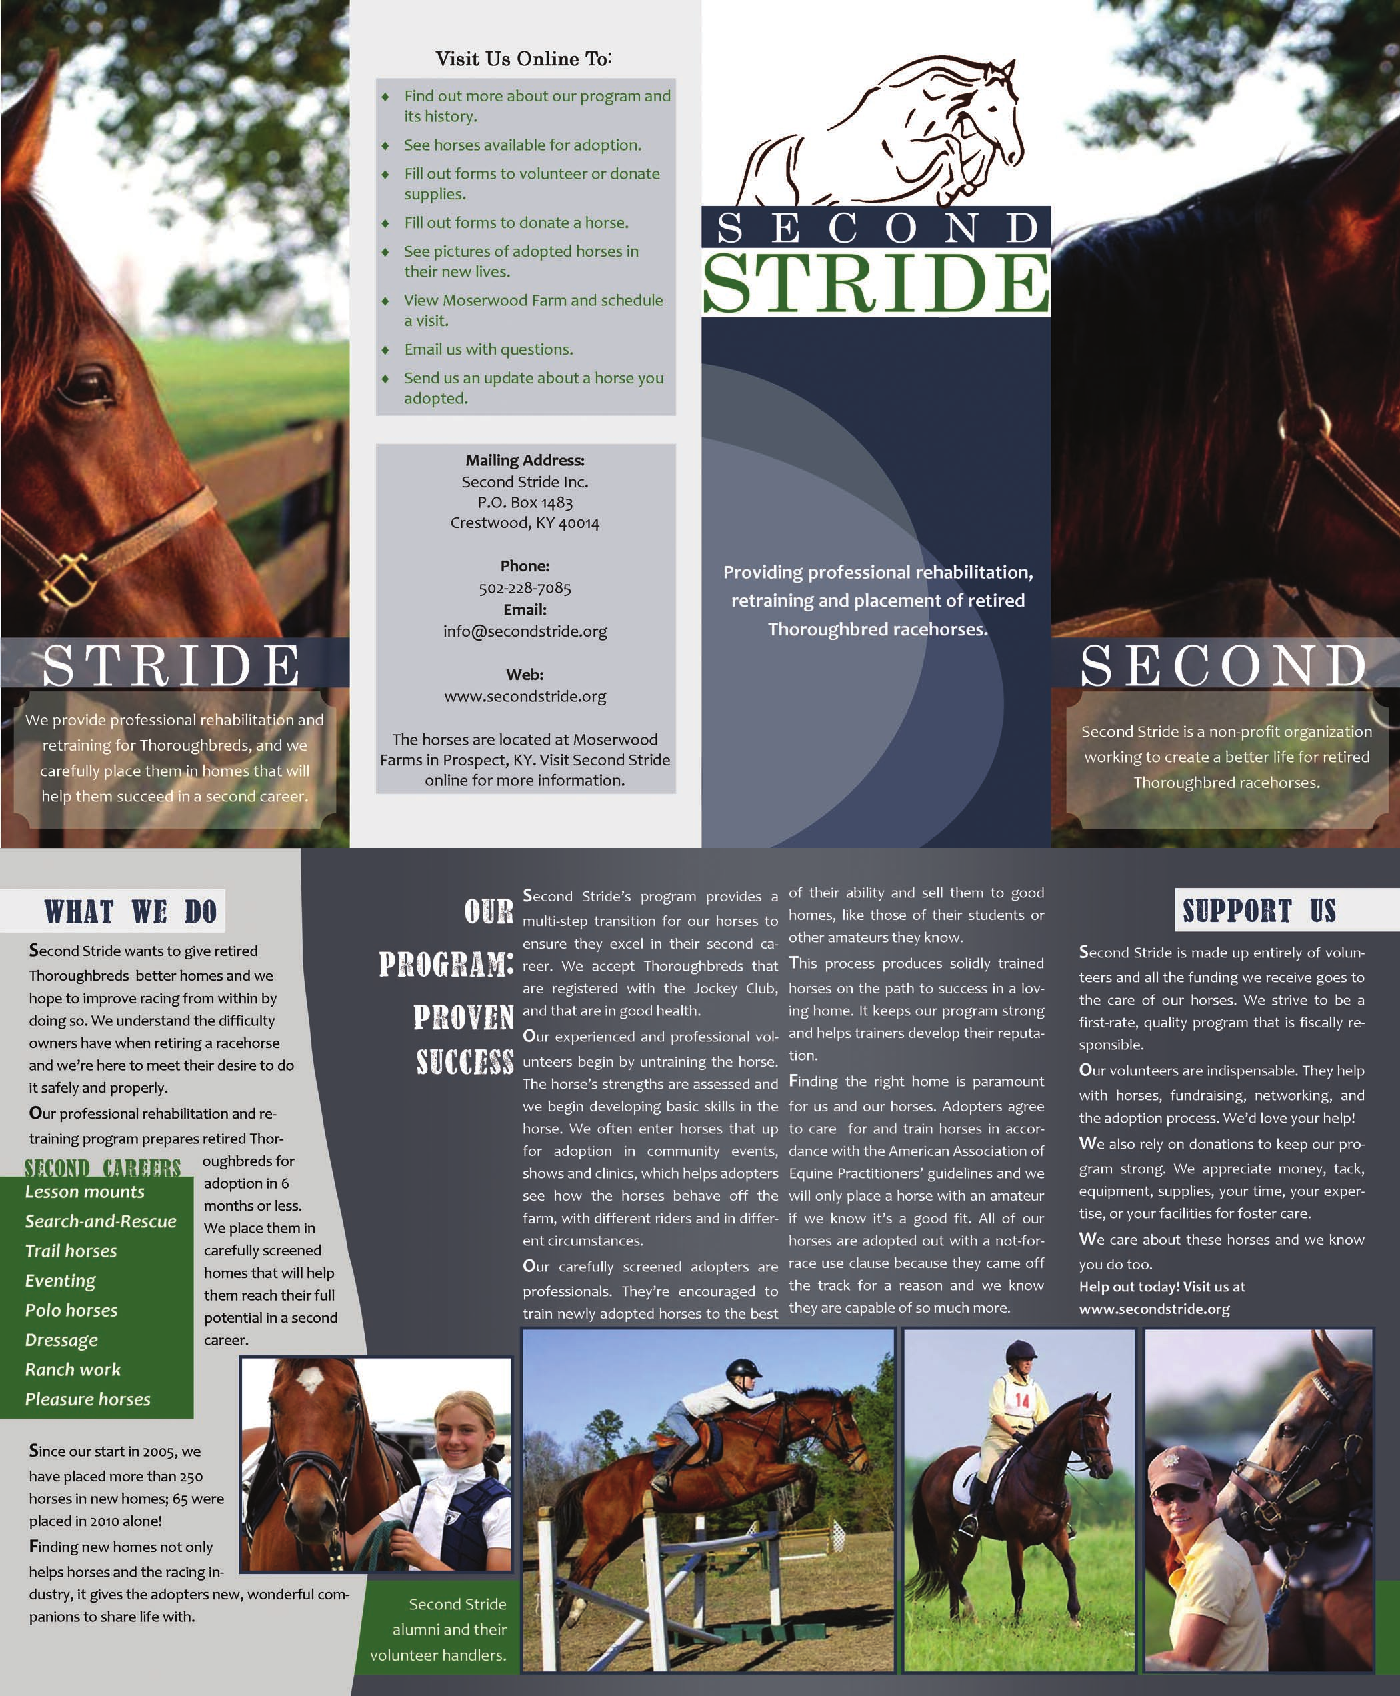 second stride brochure.png